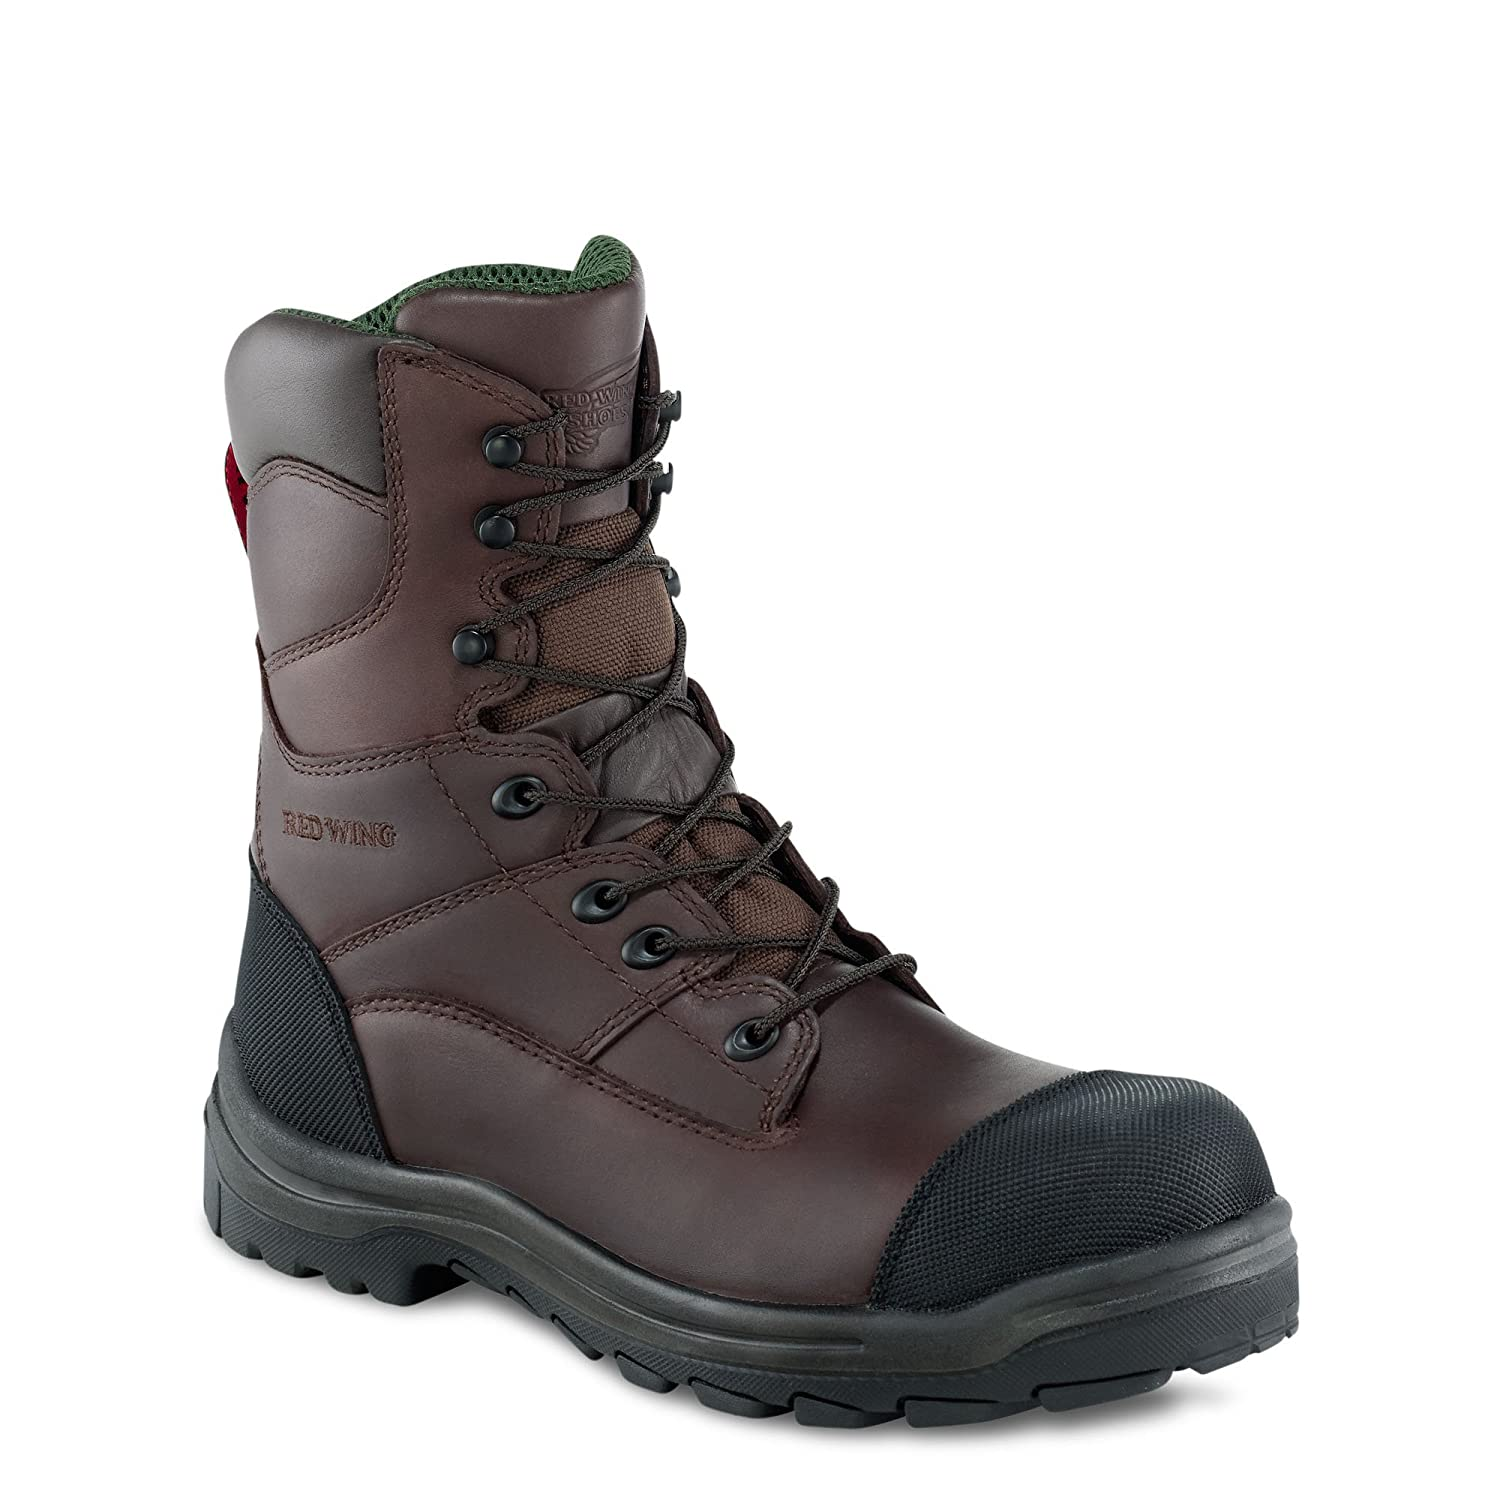 Red Wing 3289 Hombres Brown 8 pulgadas Impermeable Botas seguridad EN345 S3 SRA: Amazon.es: Zapatos y complementos